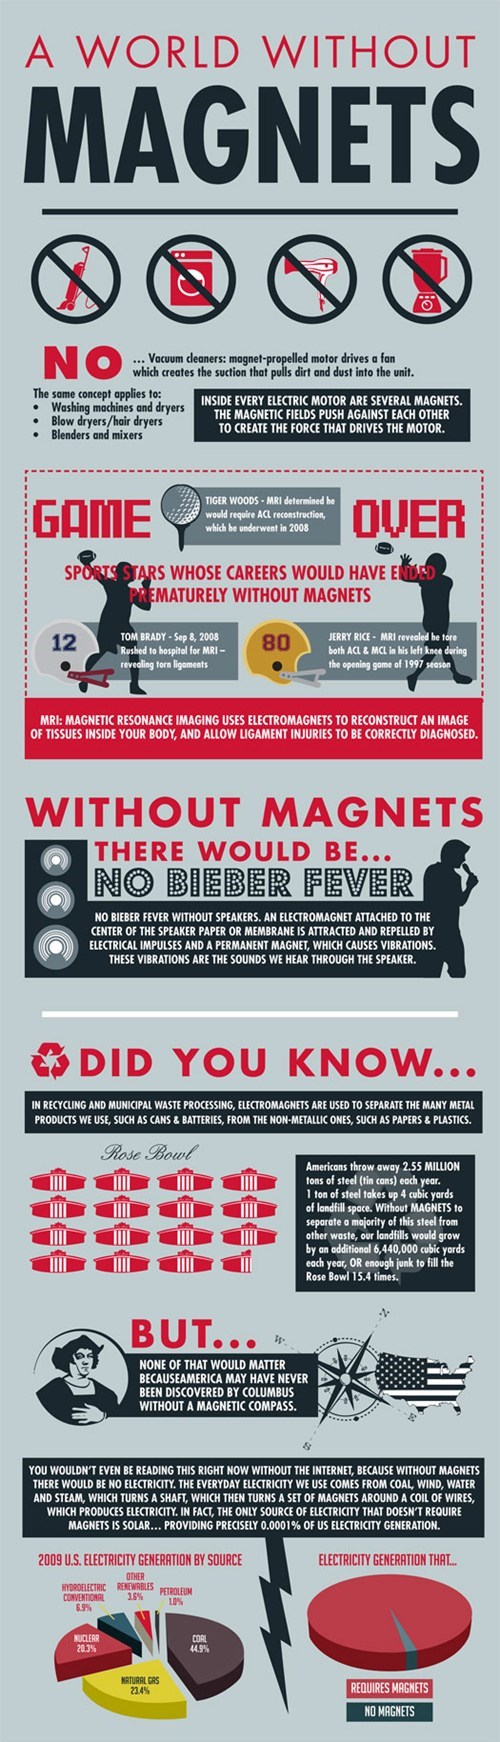 The Miracles of Magnets